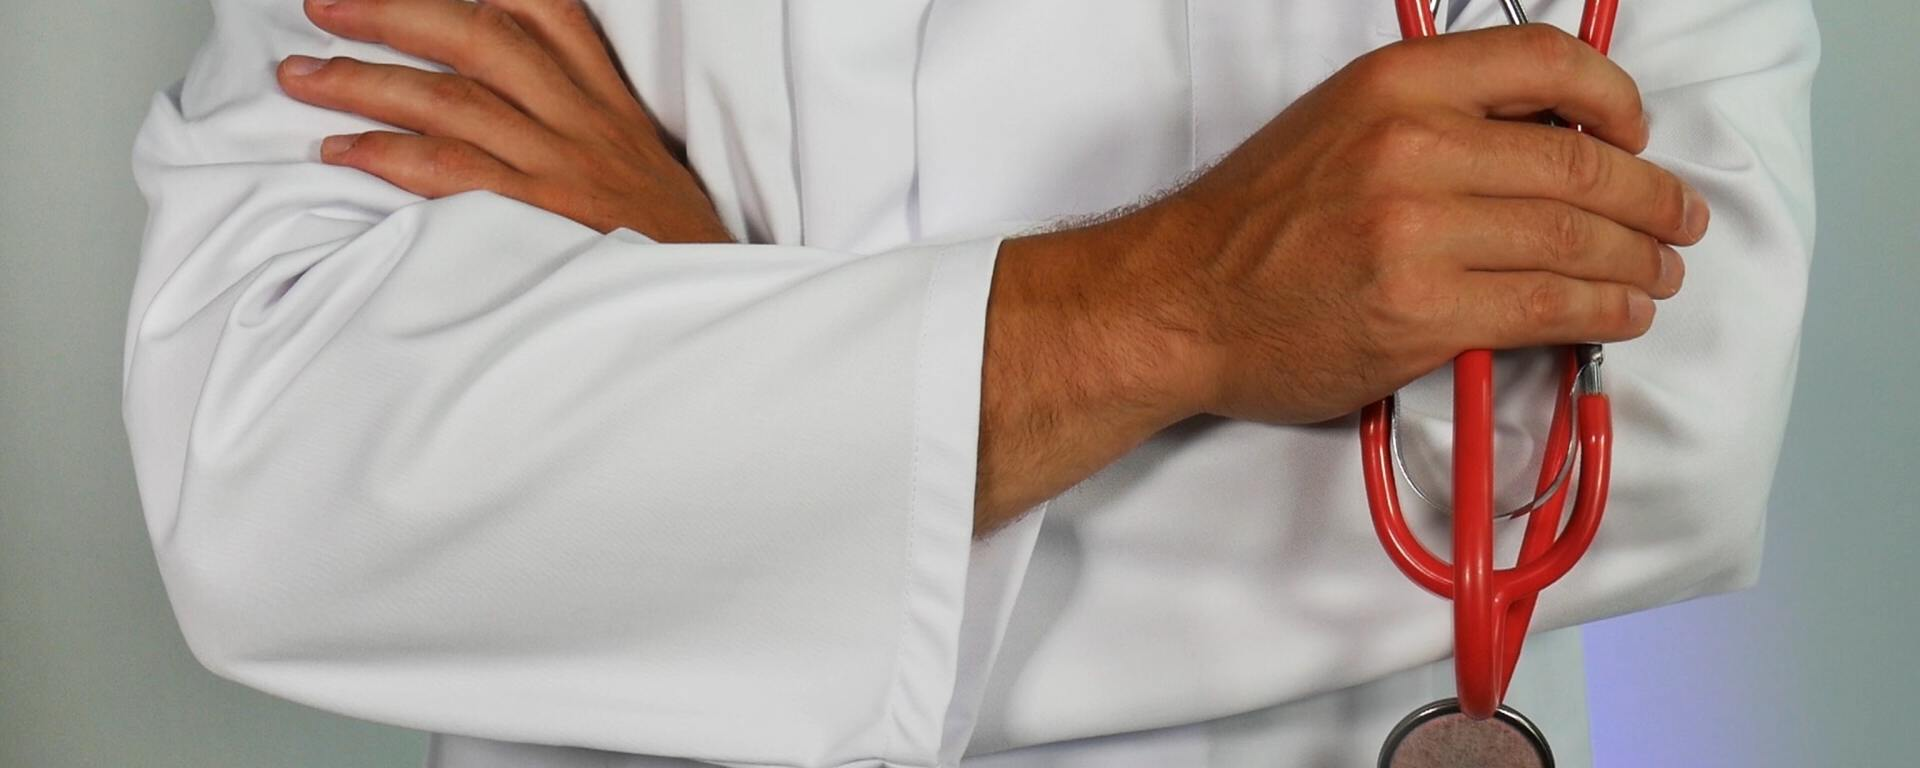 A man in a white lab coat is pictured waist down, holding a stethoscope